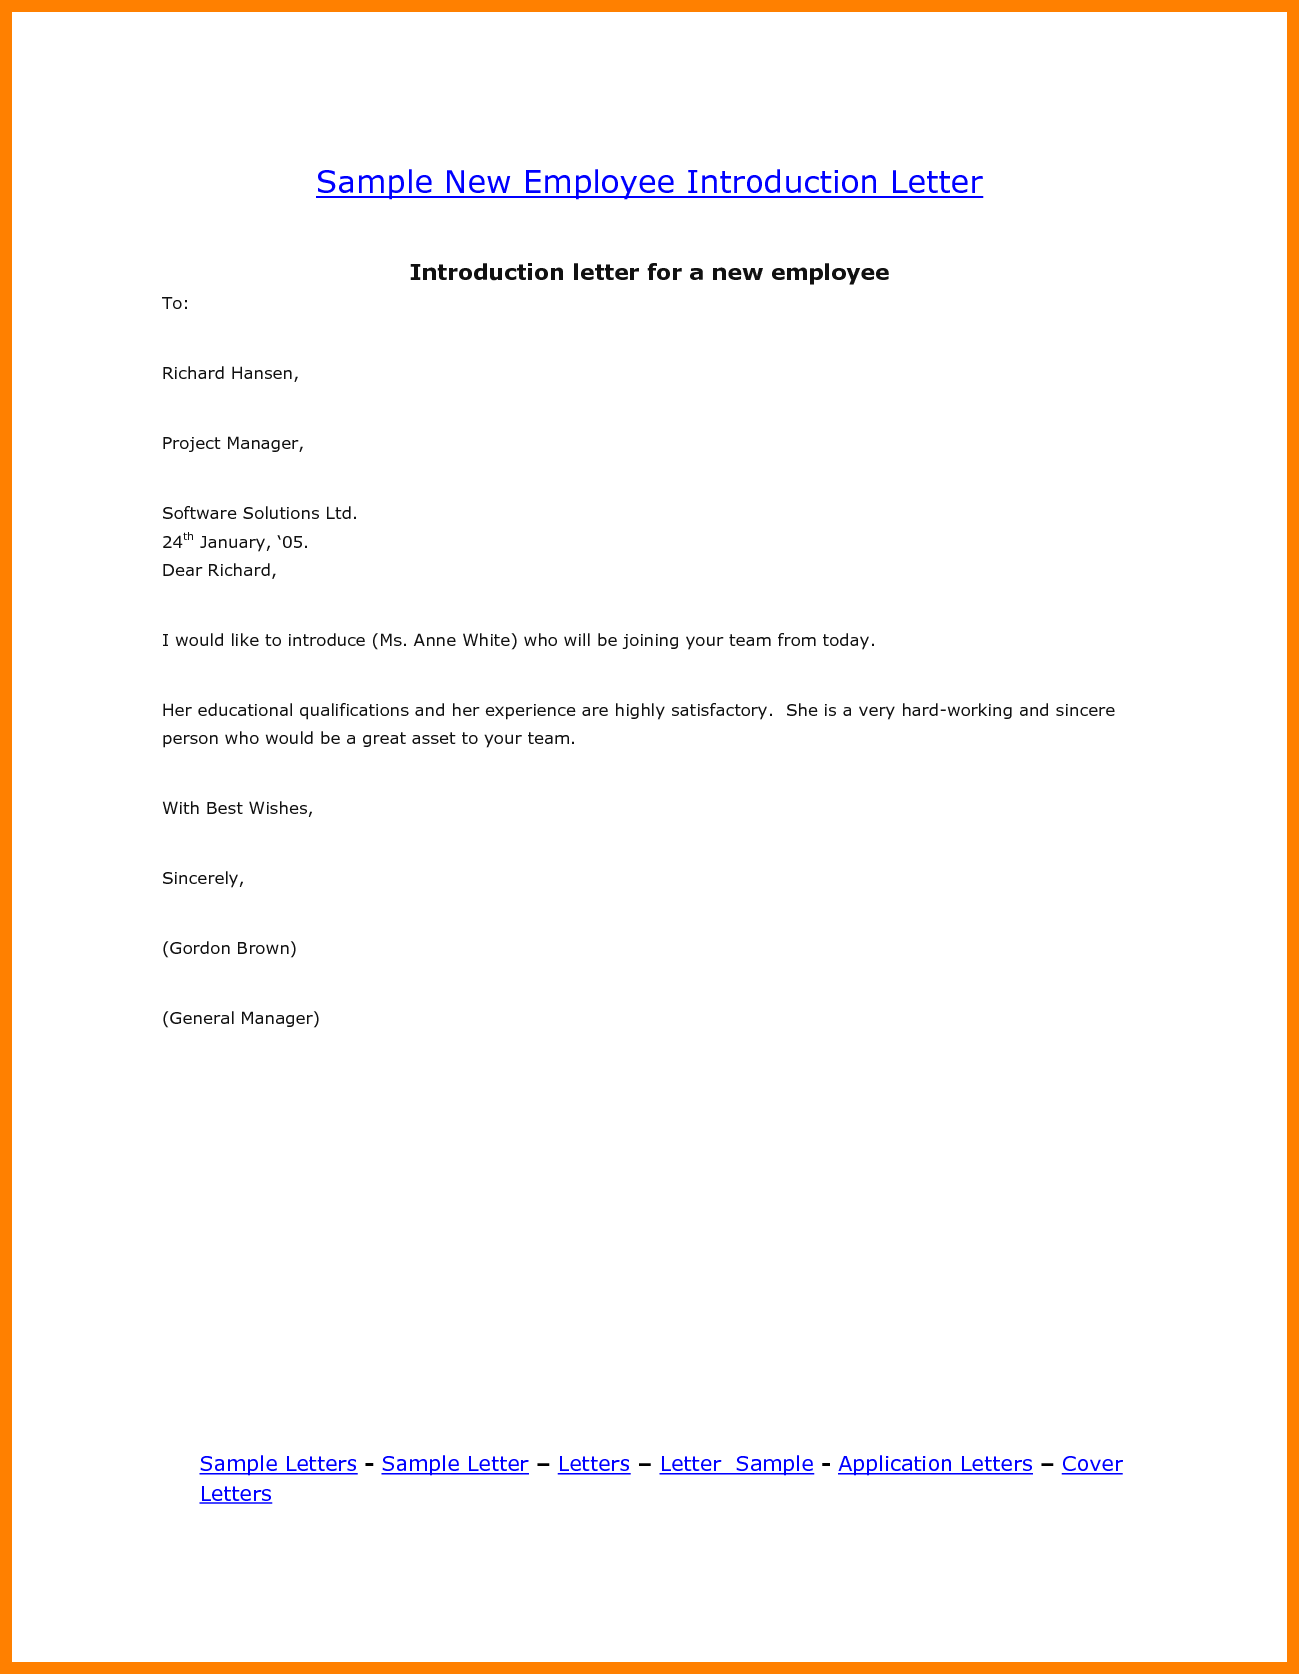 May I Introduce our New Employee to You Template & Sample Form